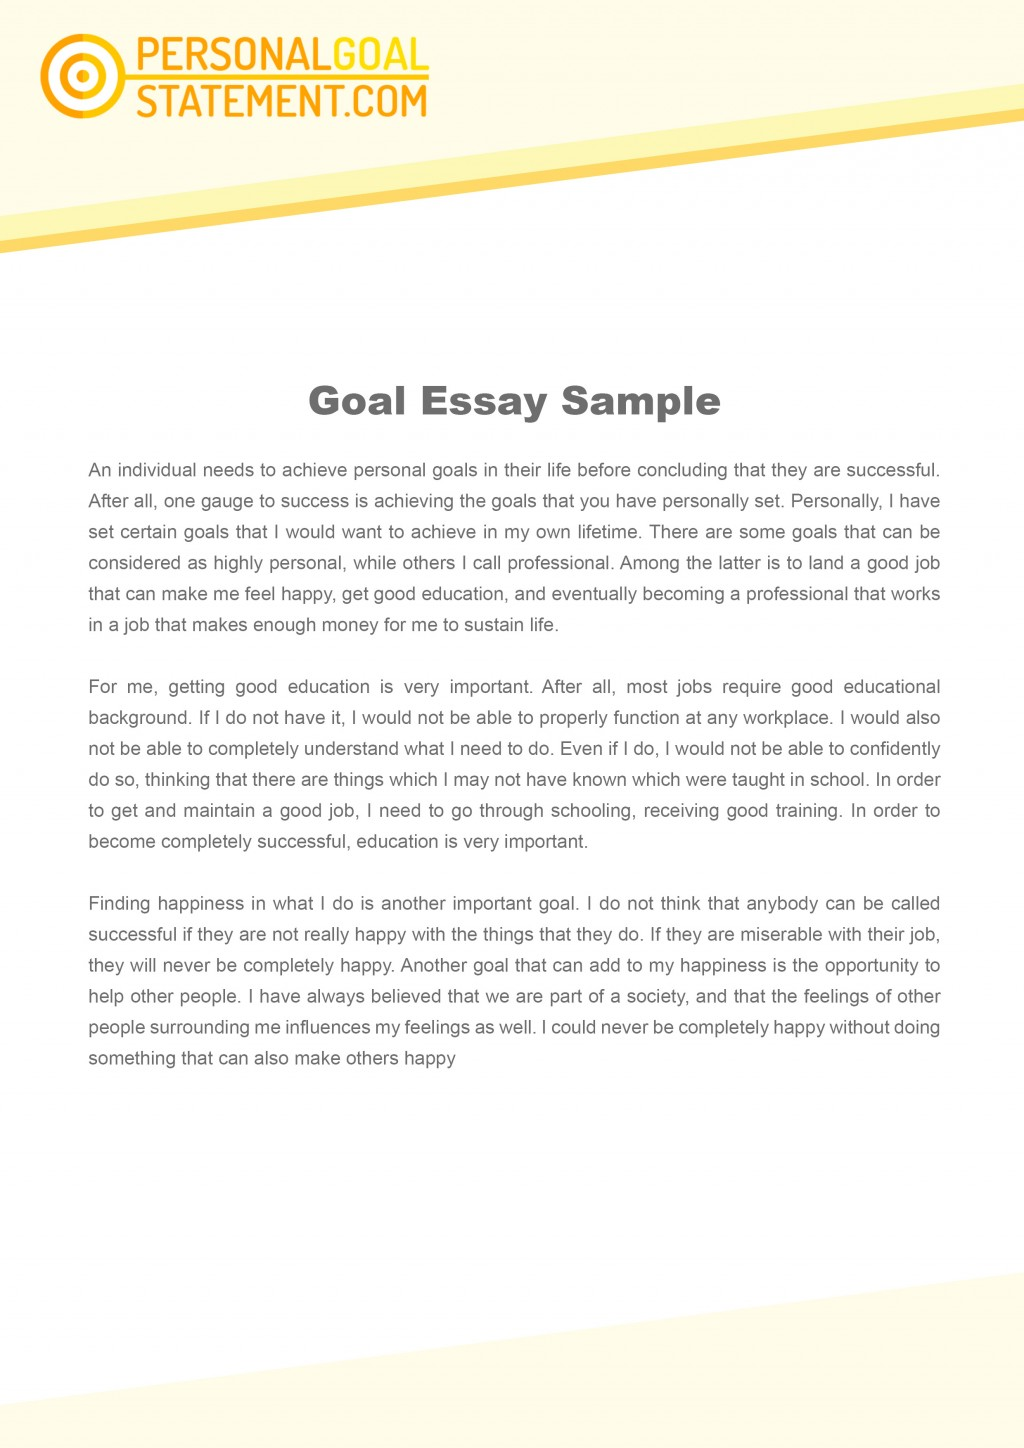 007 Academic Goals Essay Example Career Goal Uniforms Debate Personal Examples L Dreaded For College Students Scholarship Future High School Large